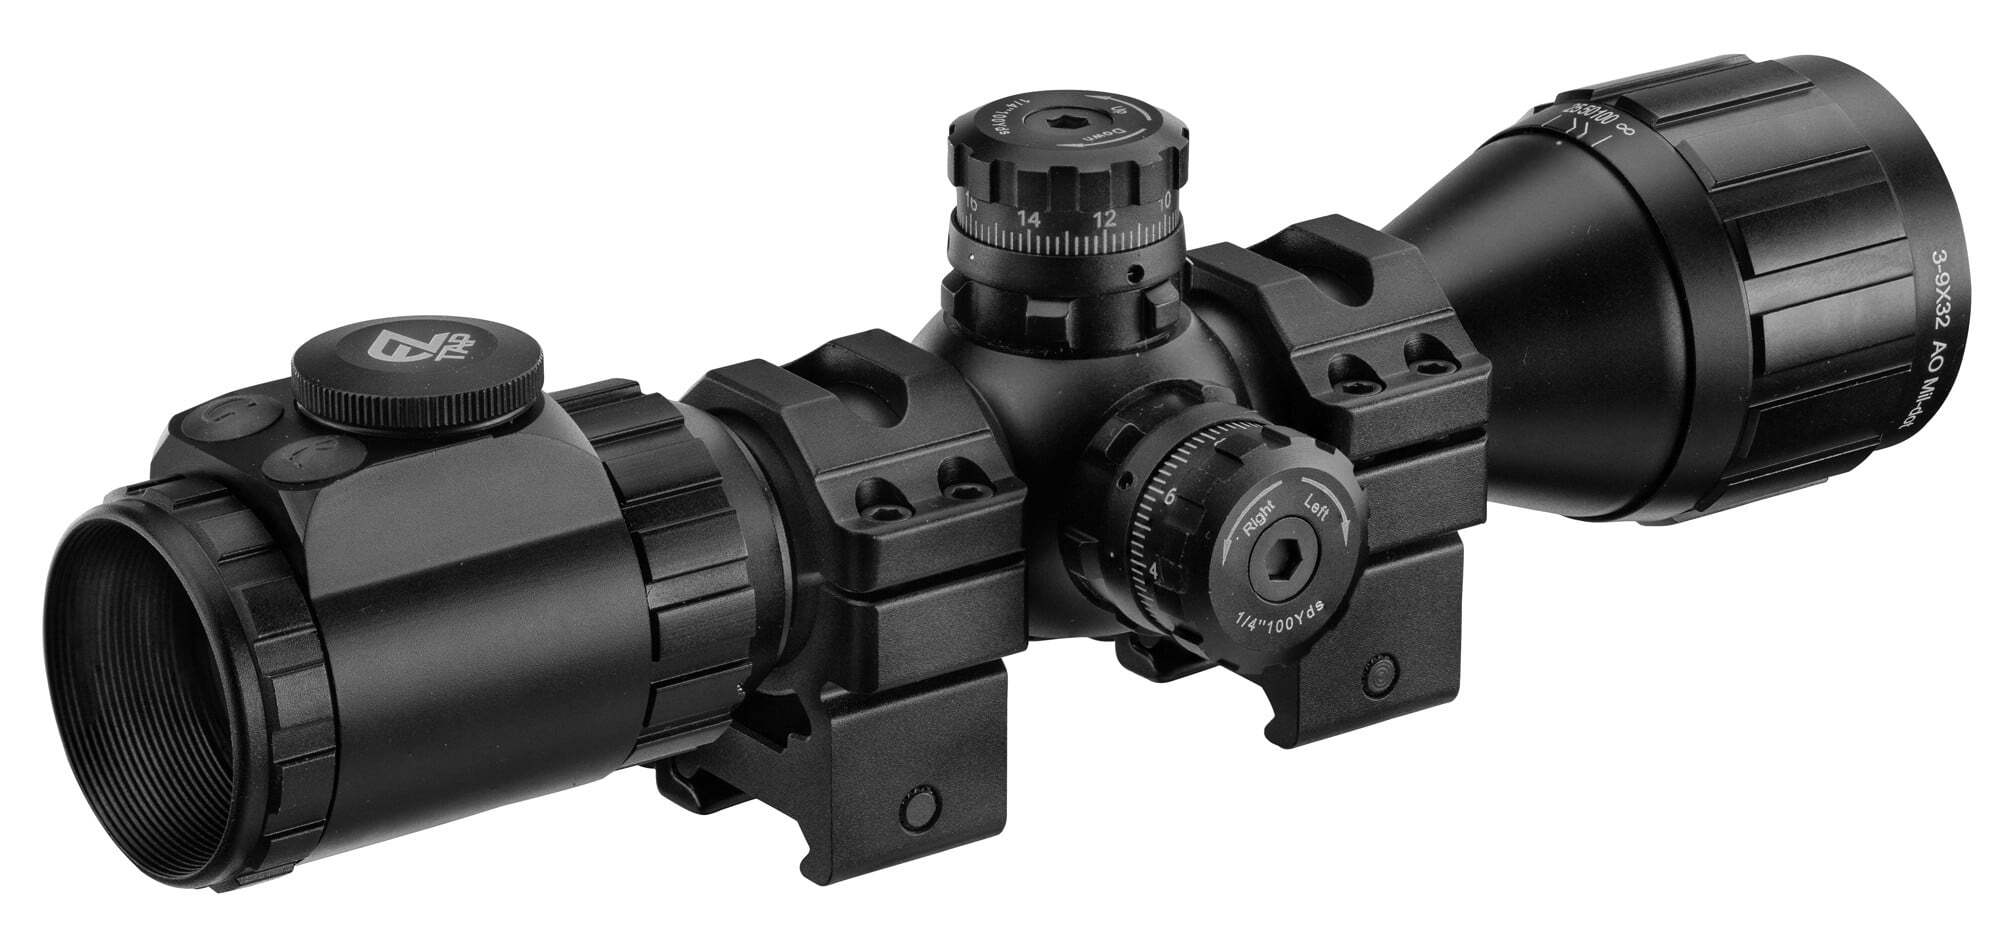 OP6721-8 UTG Mildot rifle scope - OP6721